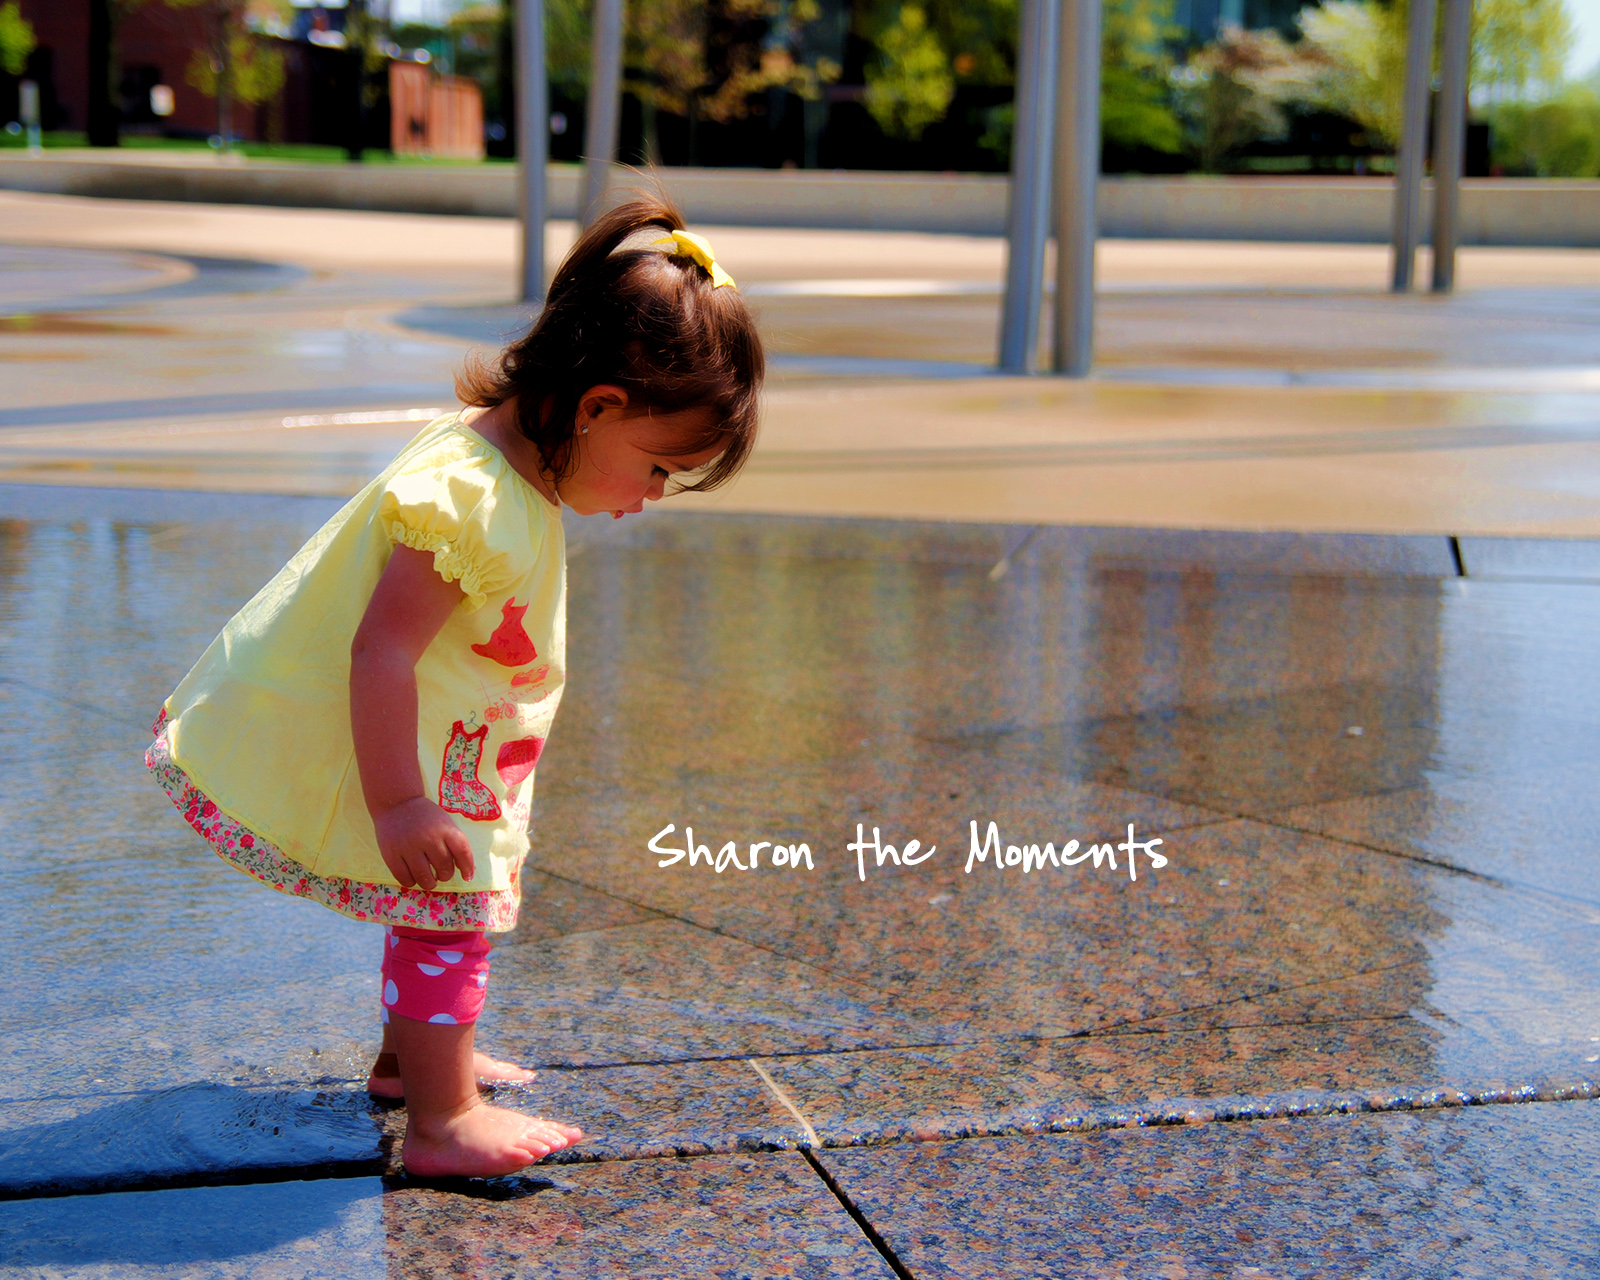 Monday Monday Spring Scioto Mile Fountains Downtown Columbus Ohio|Sharon the Moments blog